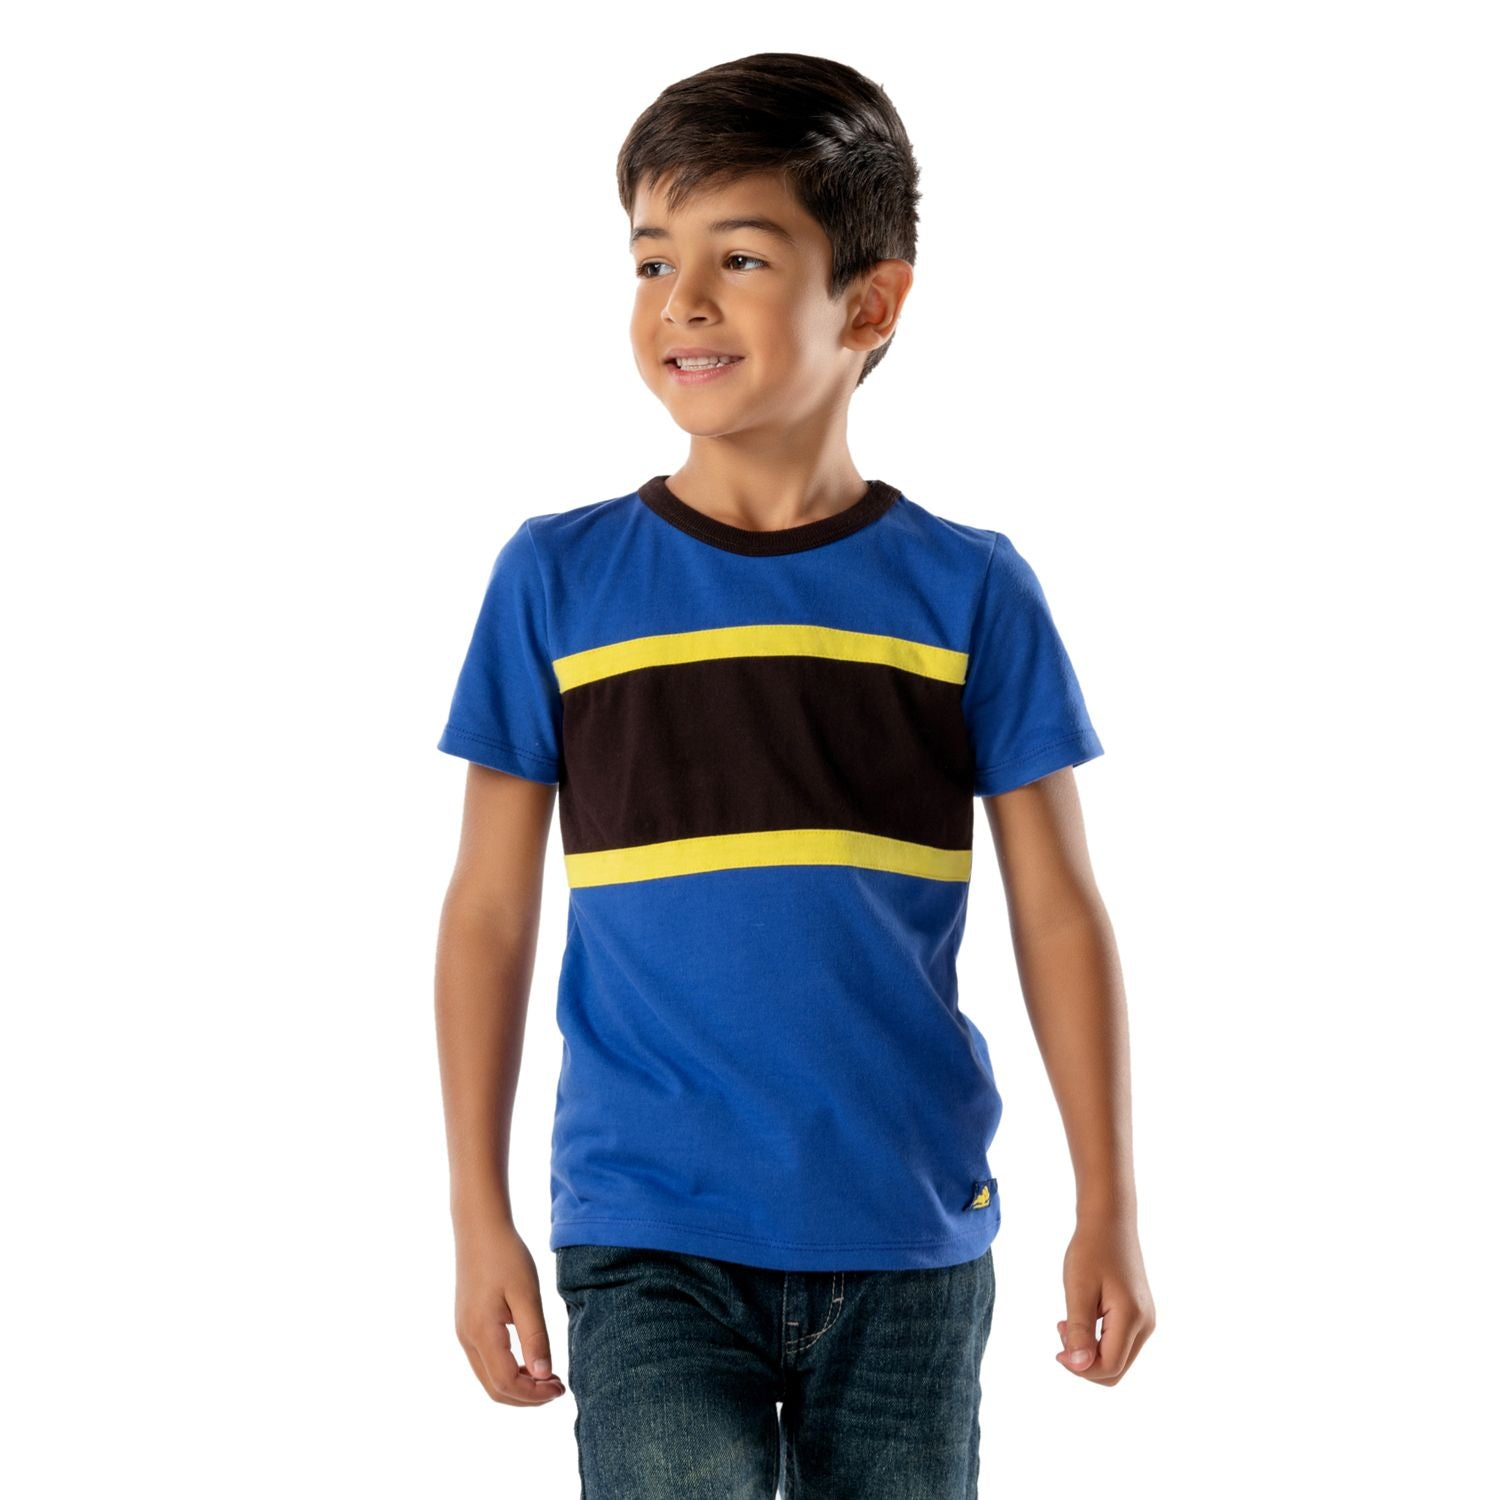 Rugby Tee for Boys